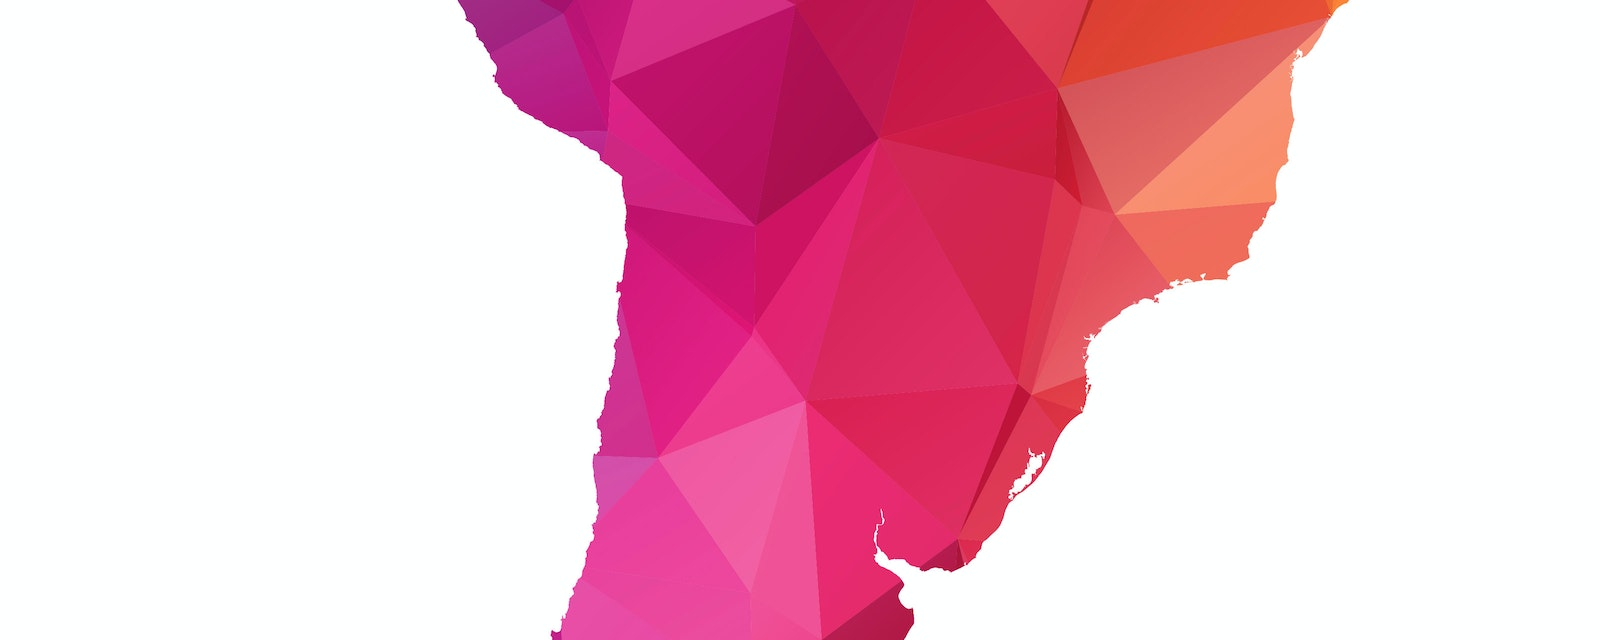 Abstract Polygon Map of Latin America